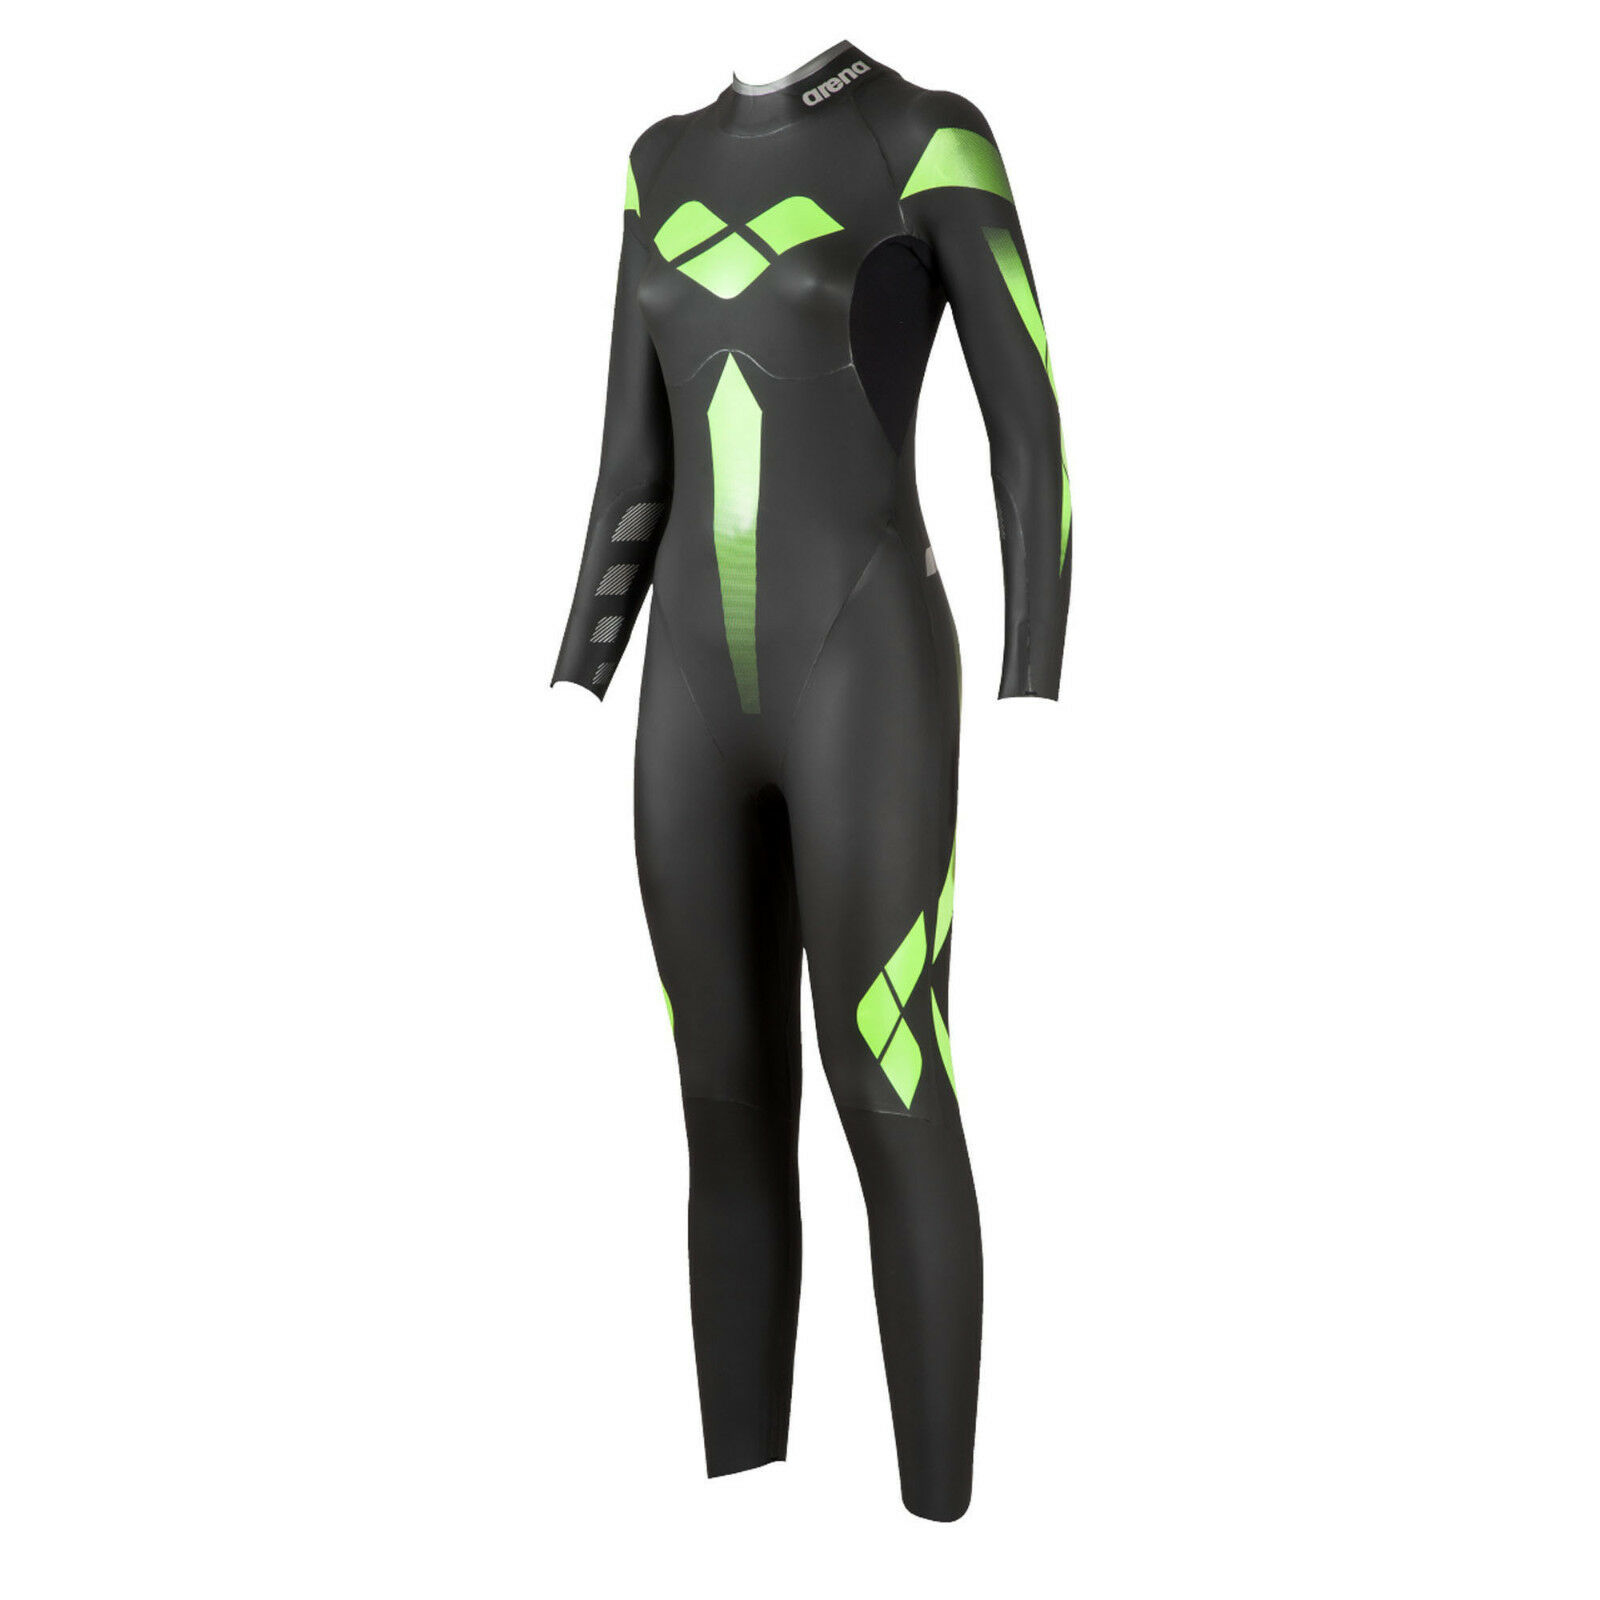 Arena 1A631 Womens Triathlon Wetsuit Open Water Neoprene Premium Swimsuit